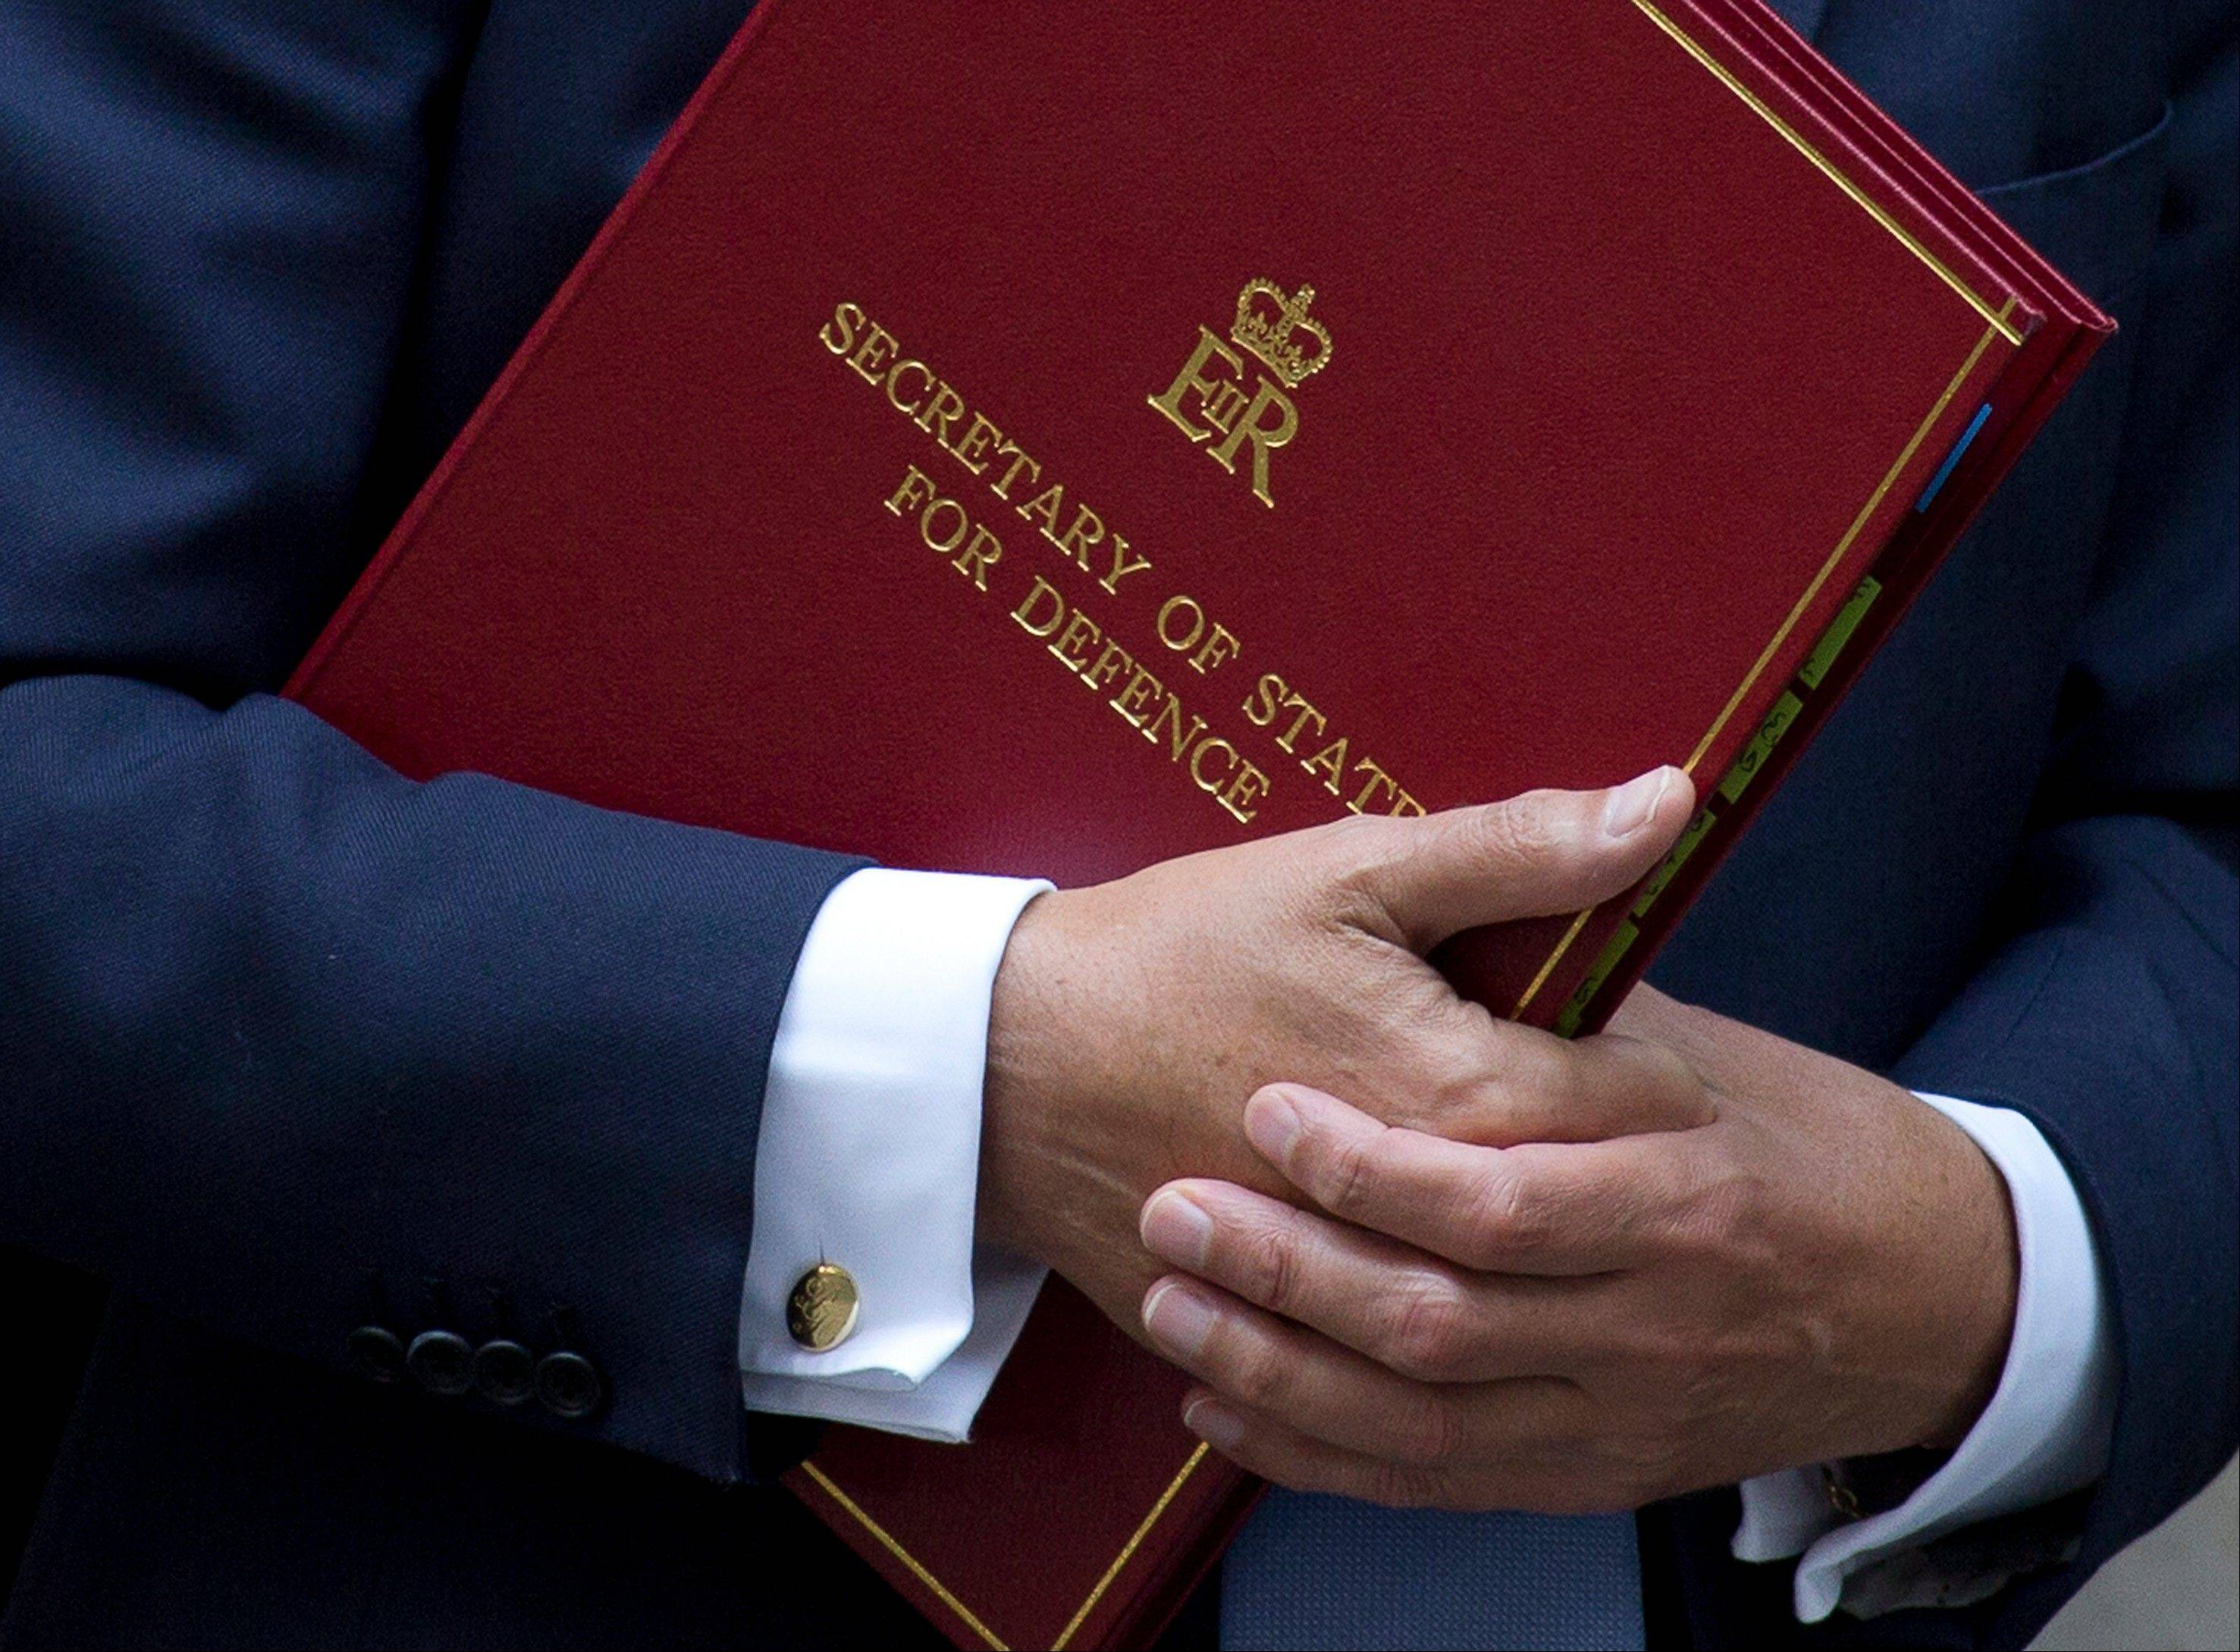 Britain's Defense Secretary Philip Hammond holds his traditional red ministerial folder as he leaves 10 Downing Street after a national security meeting at in London, Wednesday, Aug. 28, 2013. French President Francois Hollande expressed readiness Friday to push ahead with plans to strike Syria for allegedly using chemical weapons despite the British Parliament's rejection of military action.